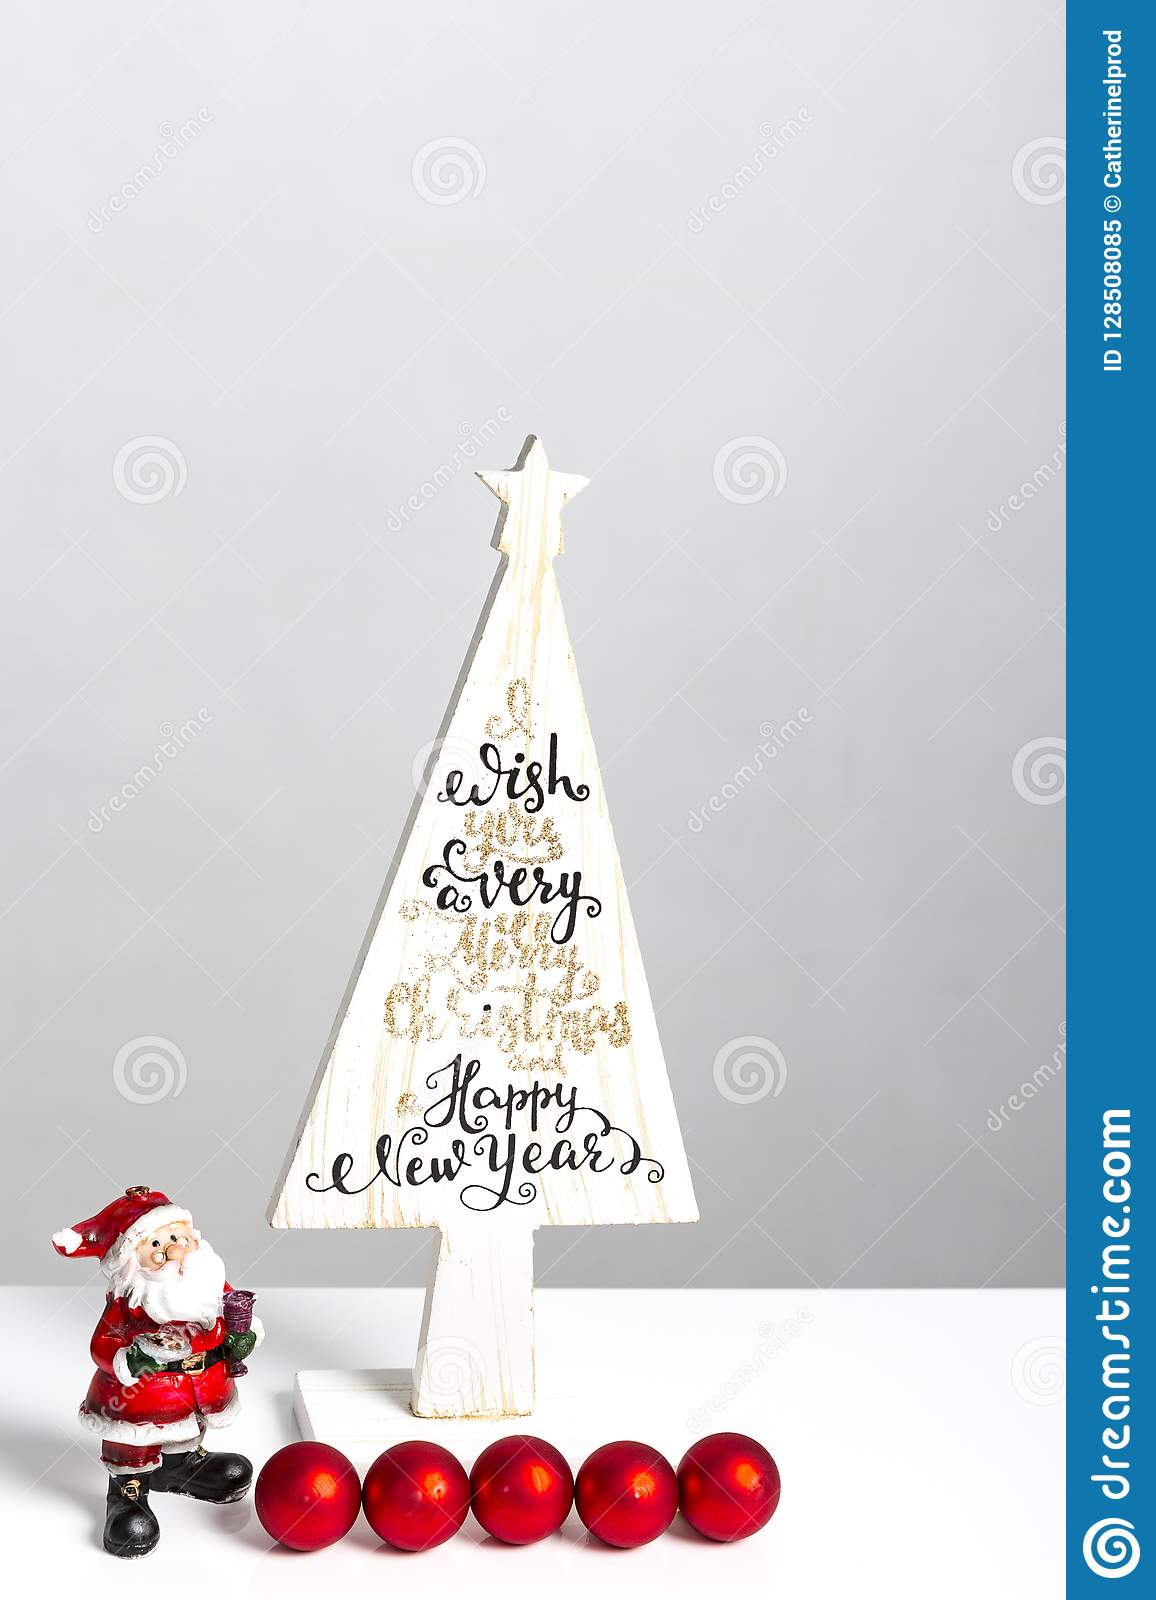 Beautiful Minimal Christmas Wood Tree With Merry Christmass And Happy New Year Written With Small Santa Claus And Red Balls On W Stock Image Image Of Celebration Nature 128508085